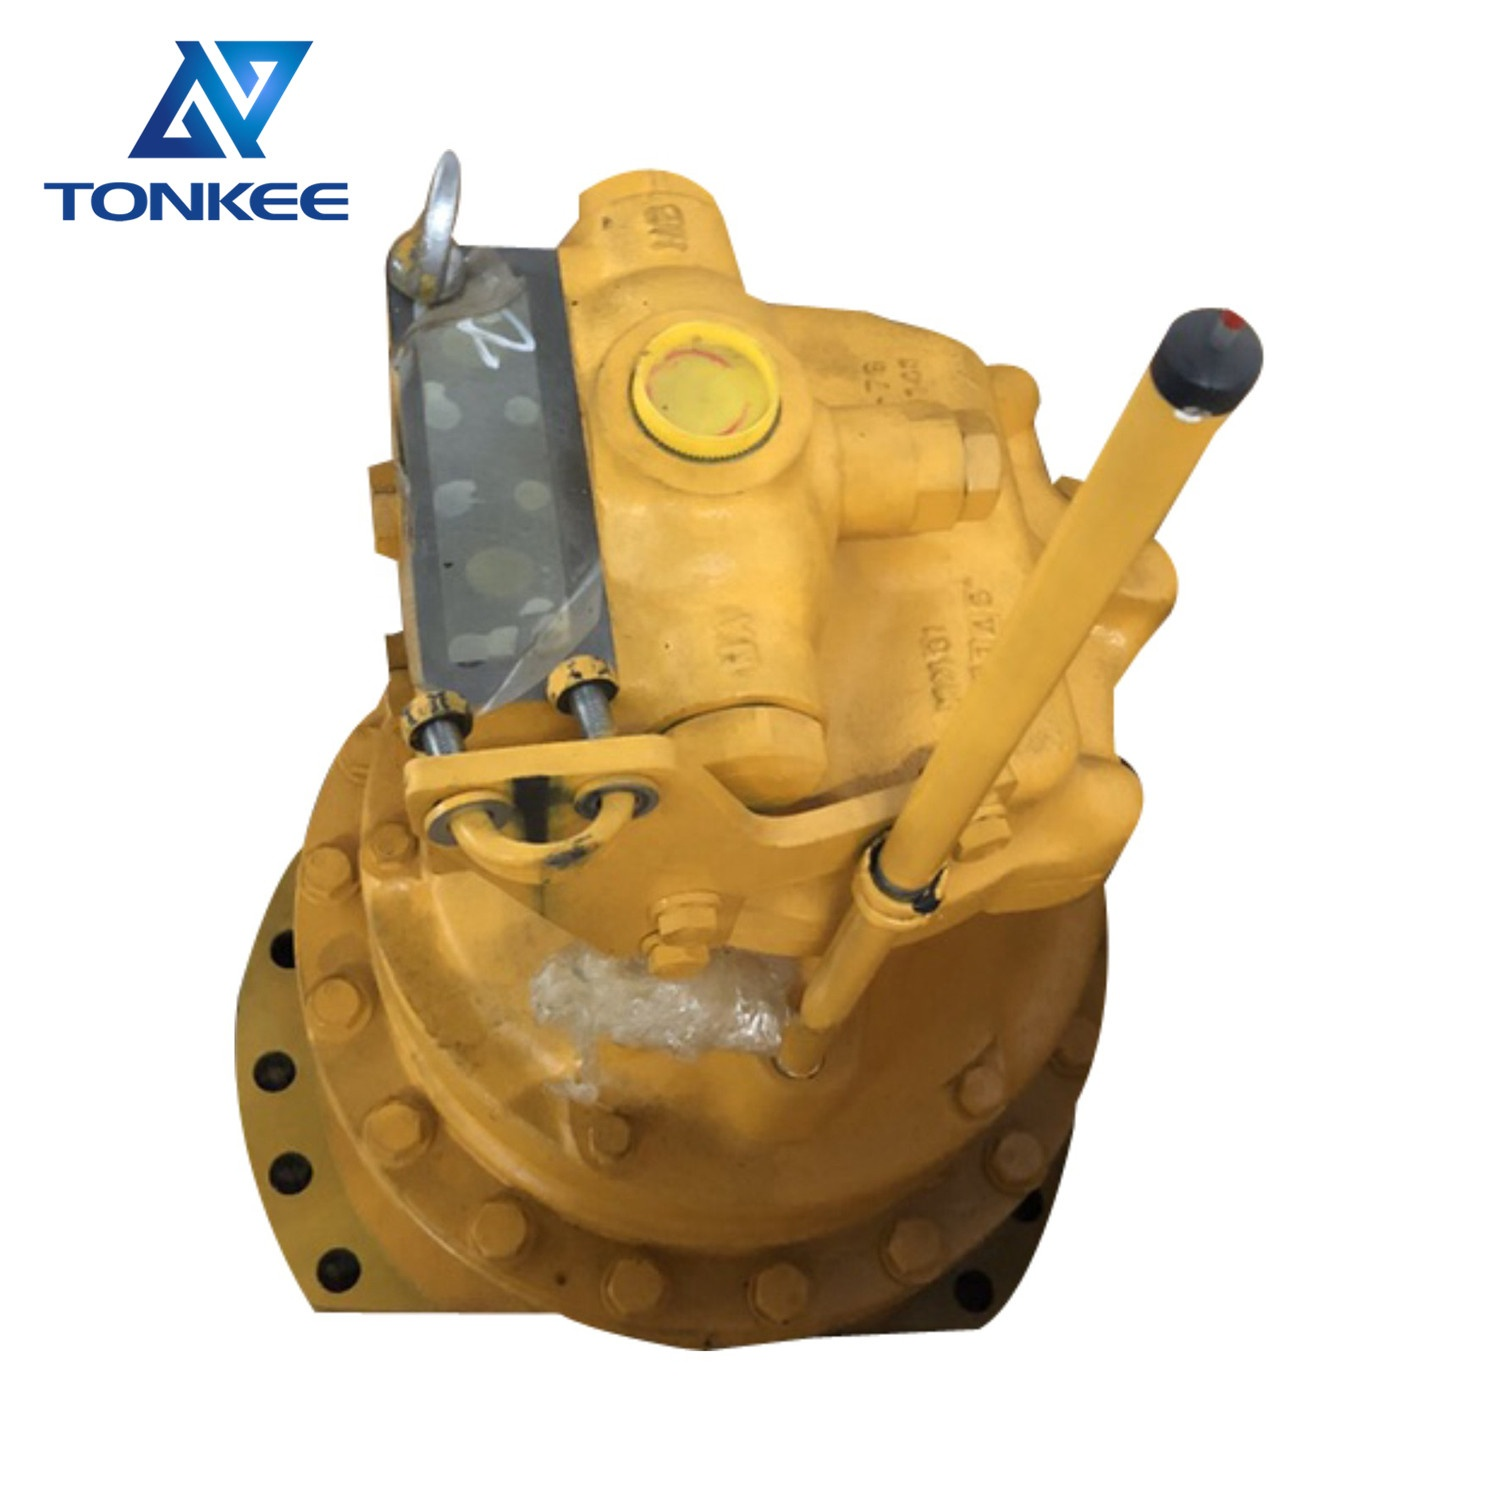 20Y-26-00232 swing machinery assembly PC200-8 PC200LC-8MO PC210-10 excavator swing motor with gearbox (2).jpg